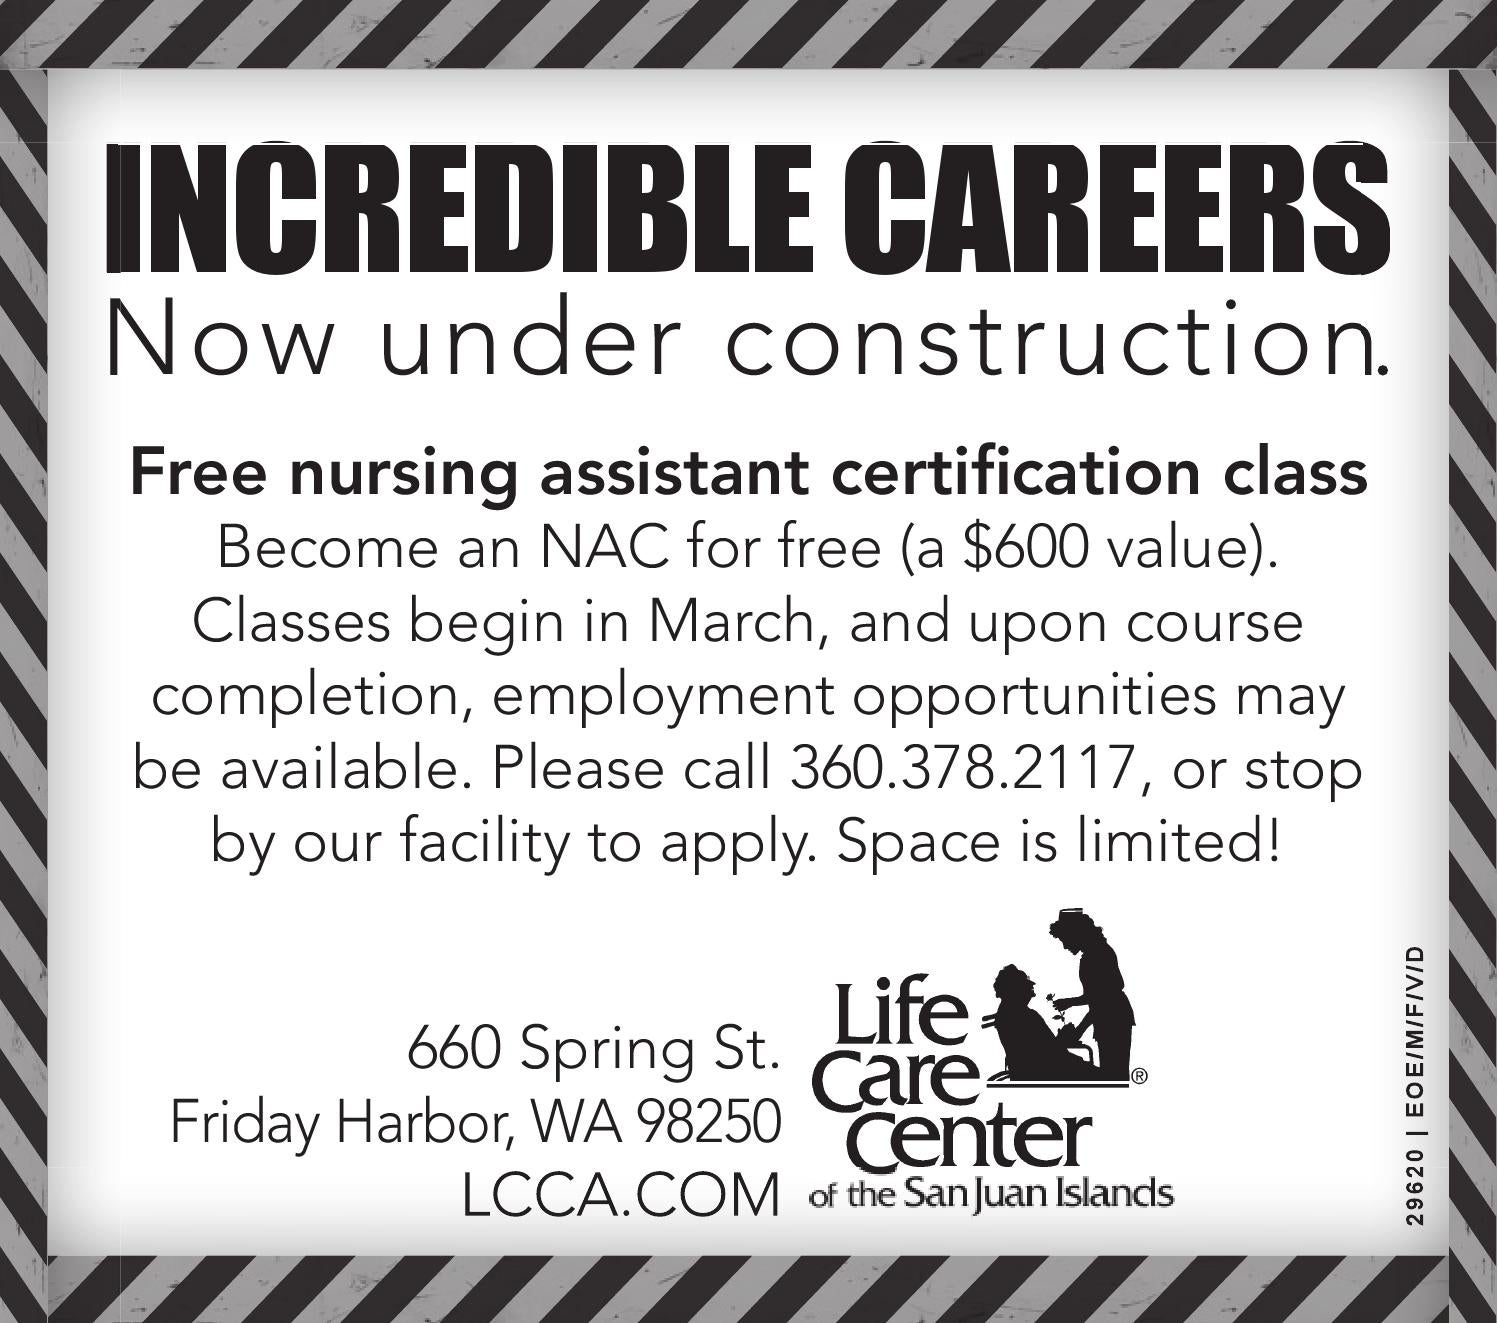 Retail Advertising Free Nursing Assistant Certification Class By